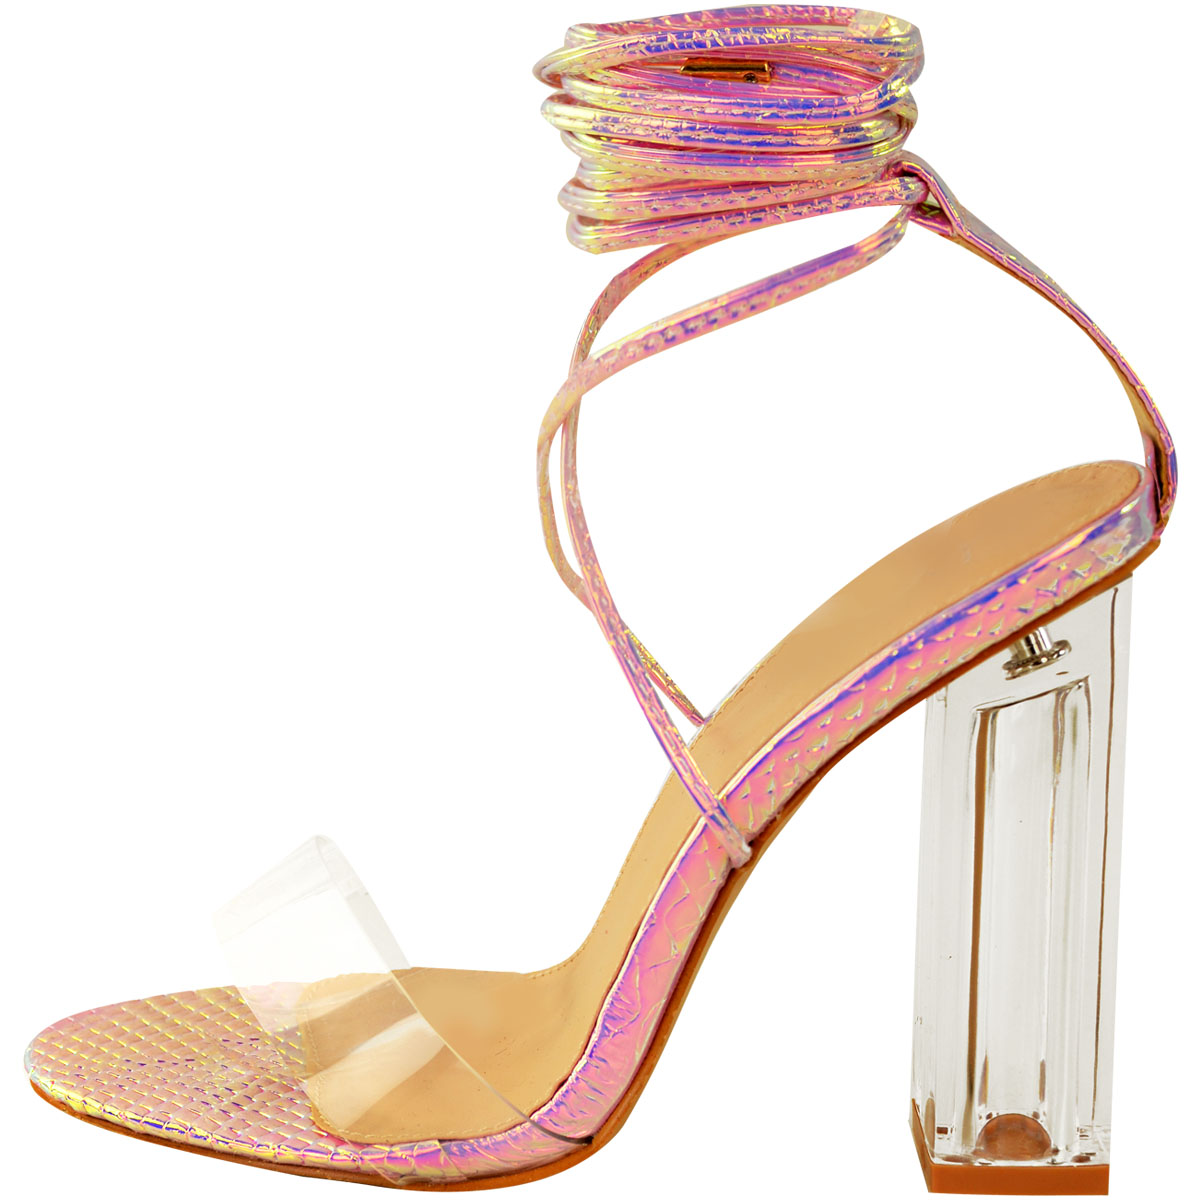 Womens-Ladies-Block-High-Heels-Sandals-Perspex-Strappy-Lace-Tie-Up-Sexy-Party